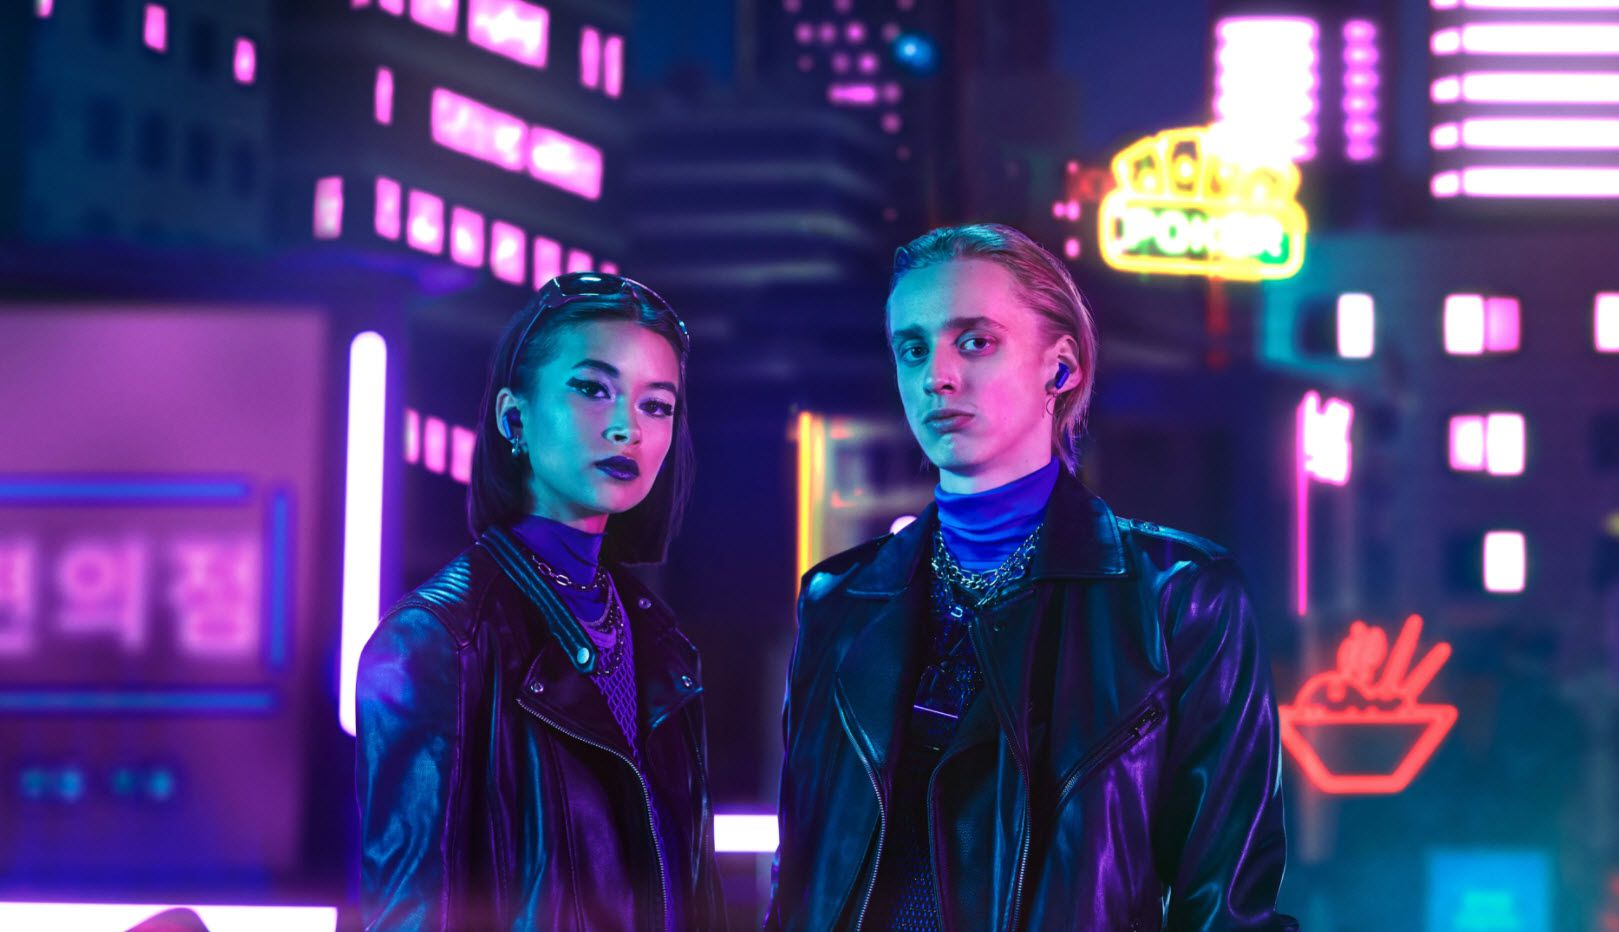 Models wearing the Urbanista Seoul earbuds on a dark city street light with black lighting.